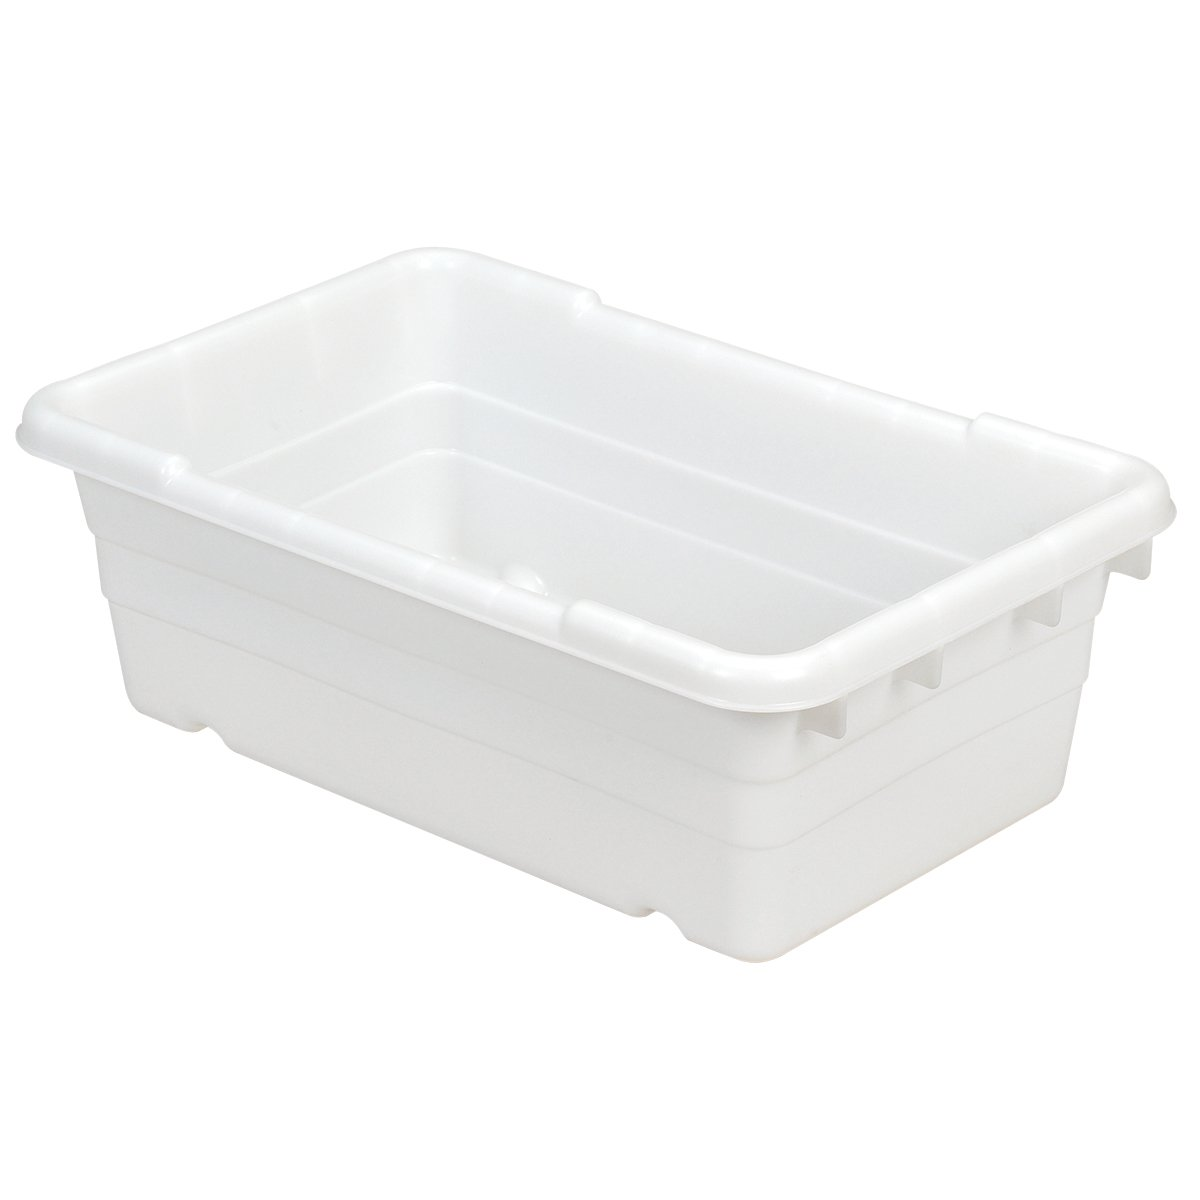 Akro-Mils 34305 Jumbo Lug Plastic Nest and Cross Stack Tub Tote - 25'' x 16'' x 9'' - Case of 6 - Natural/White